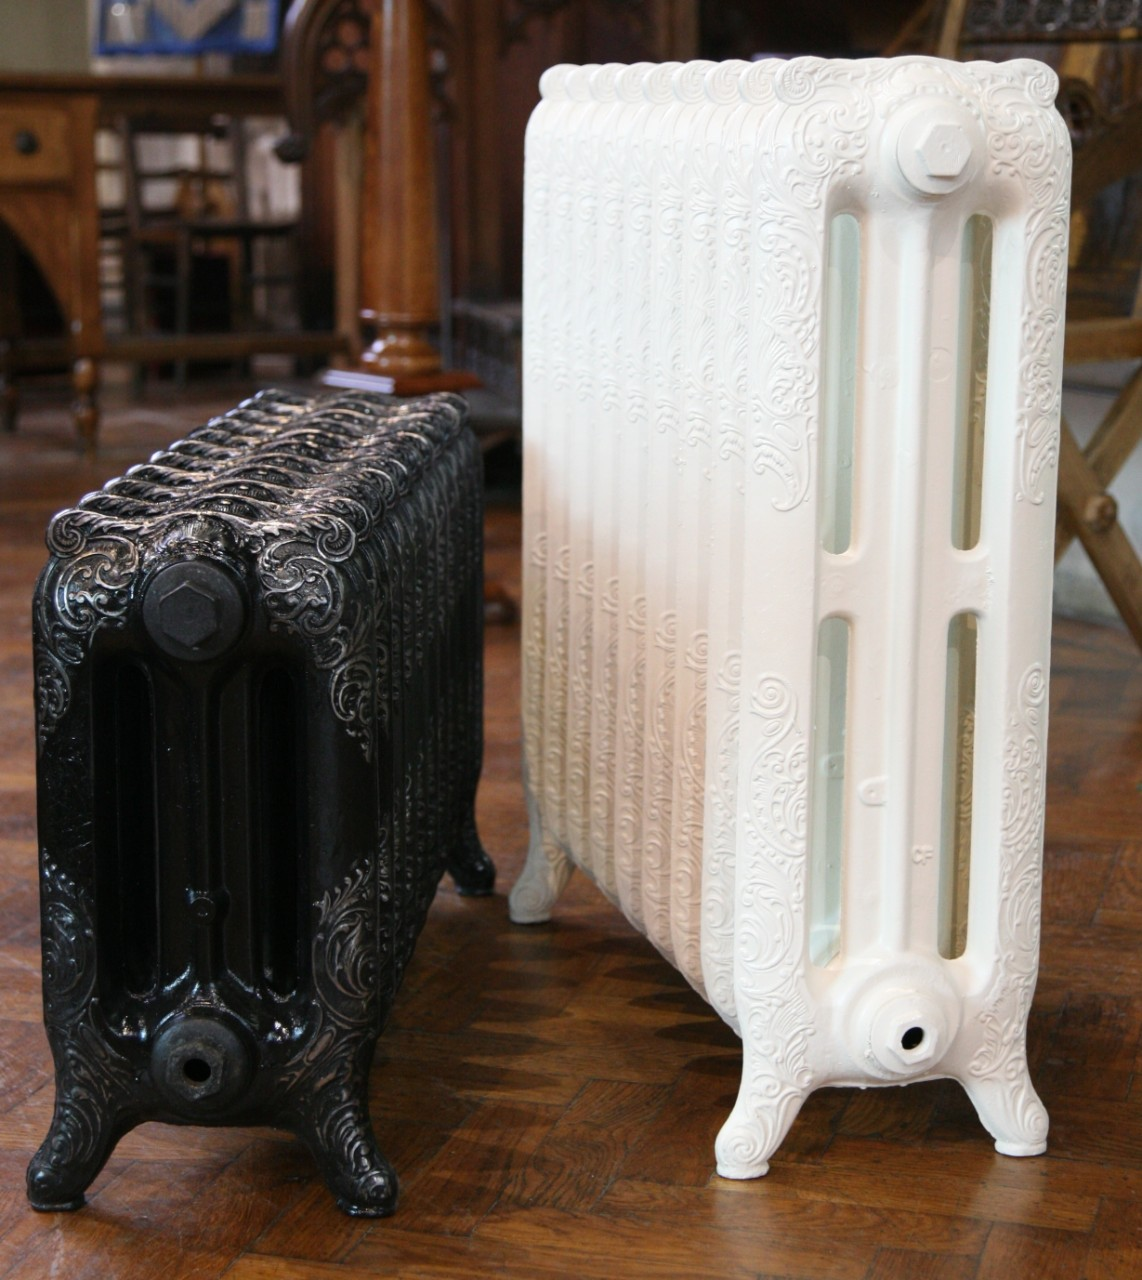 parisian-cast-iron-radiator-470mm-11-sections-_2_-197-p